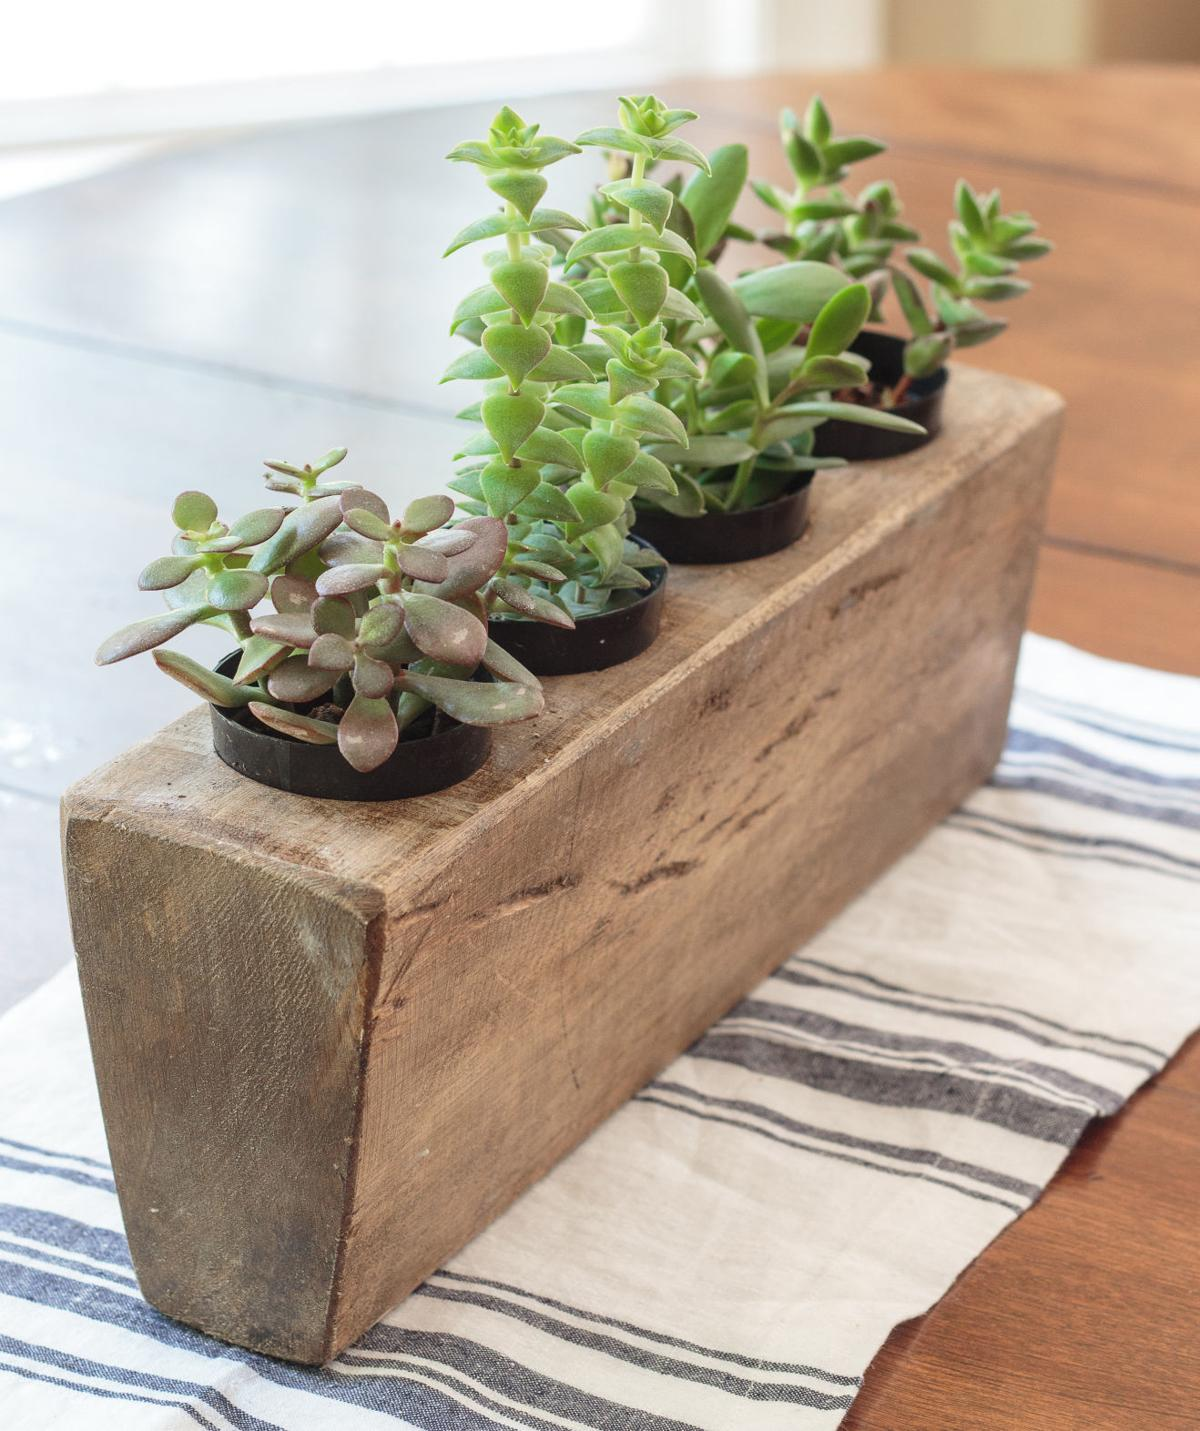 Upcycling Almost Anything Can Become Planting Container For